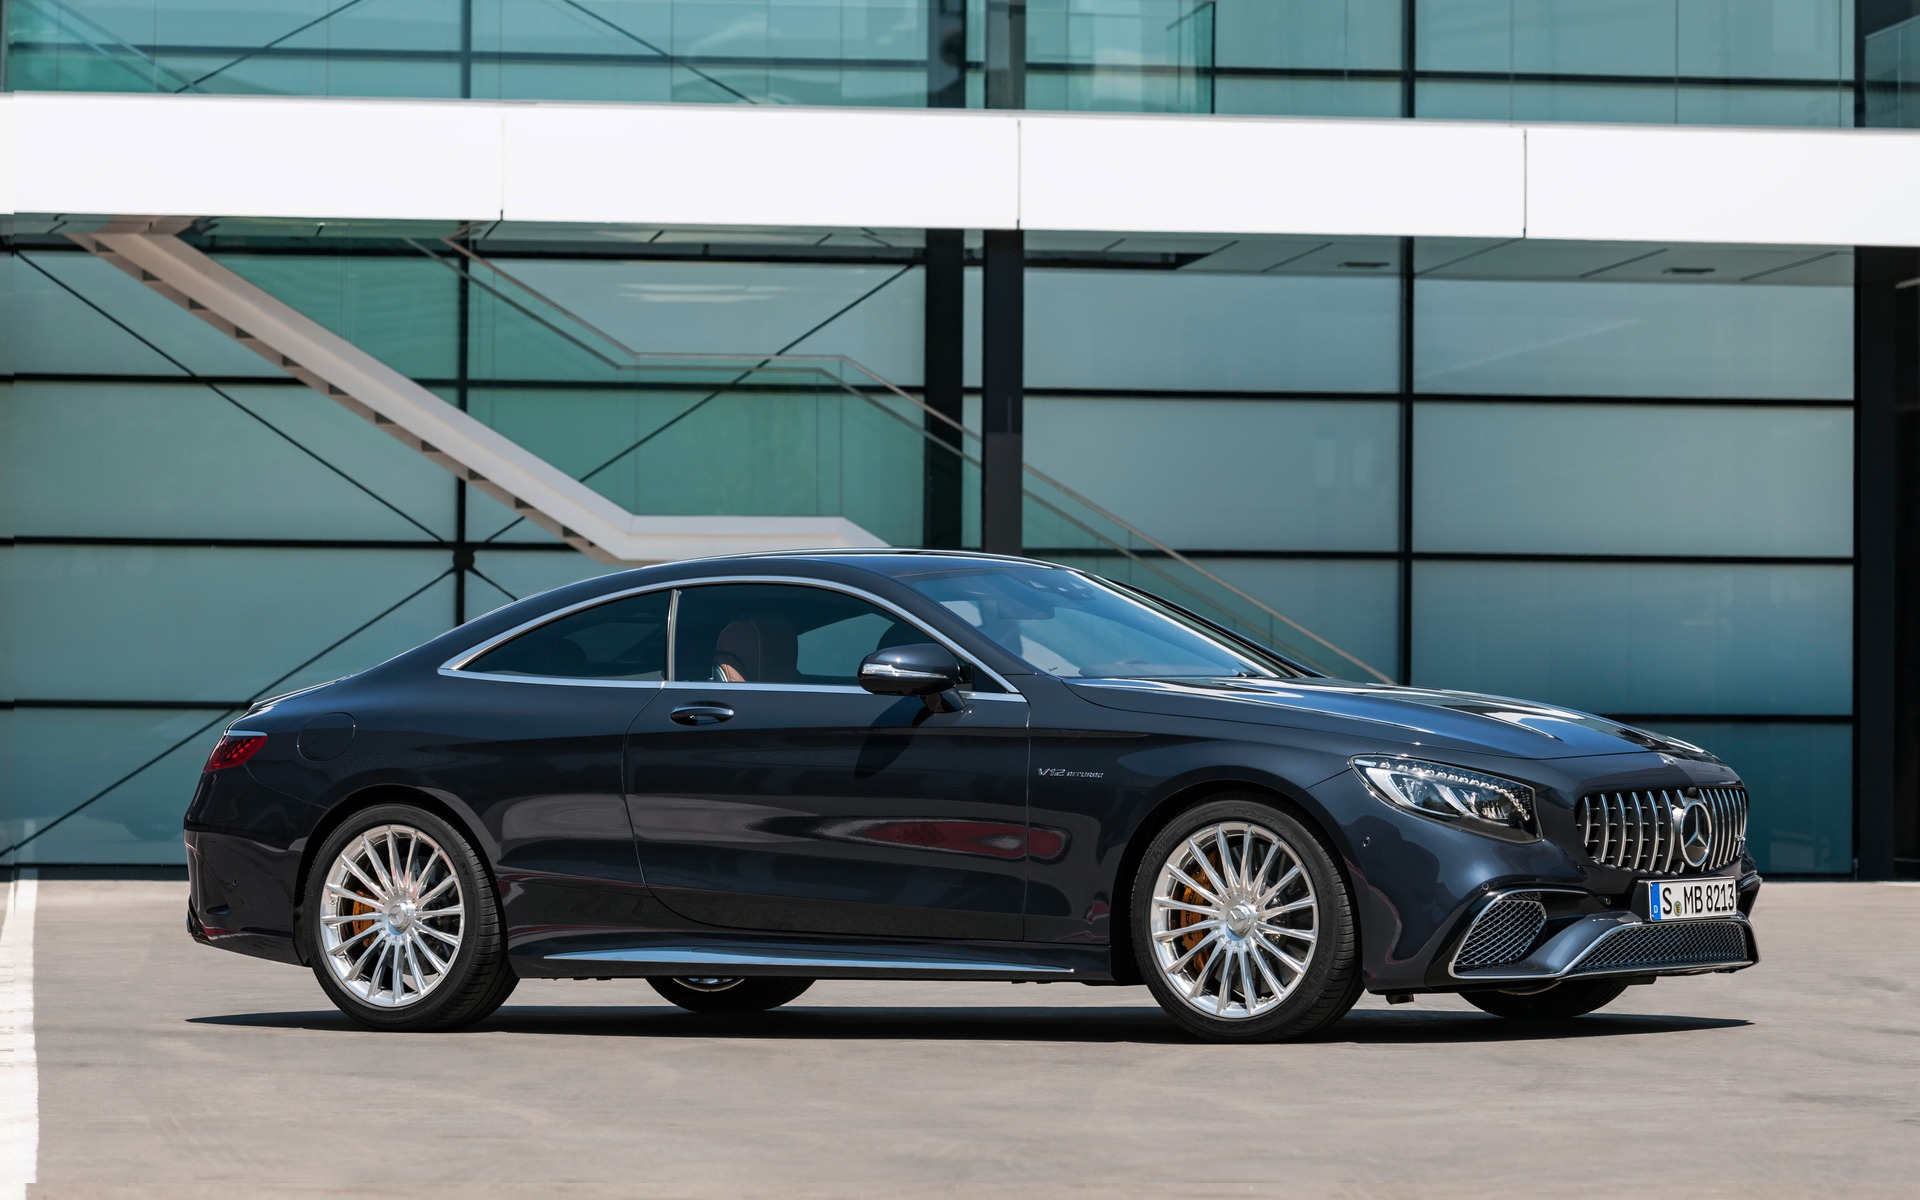 Updates For The 2018 Mercedes Benz S Class Coupe And